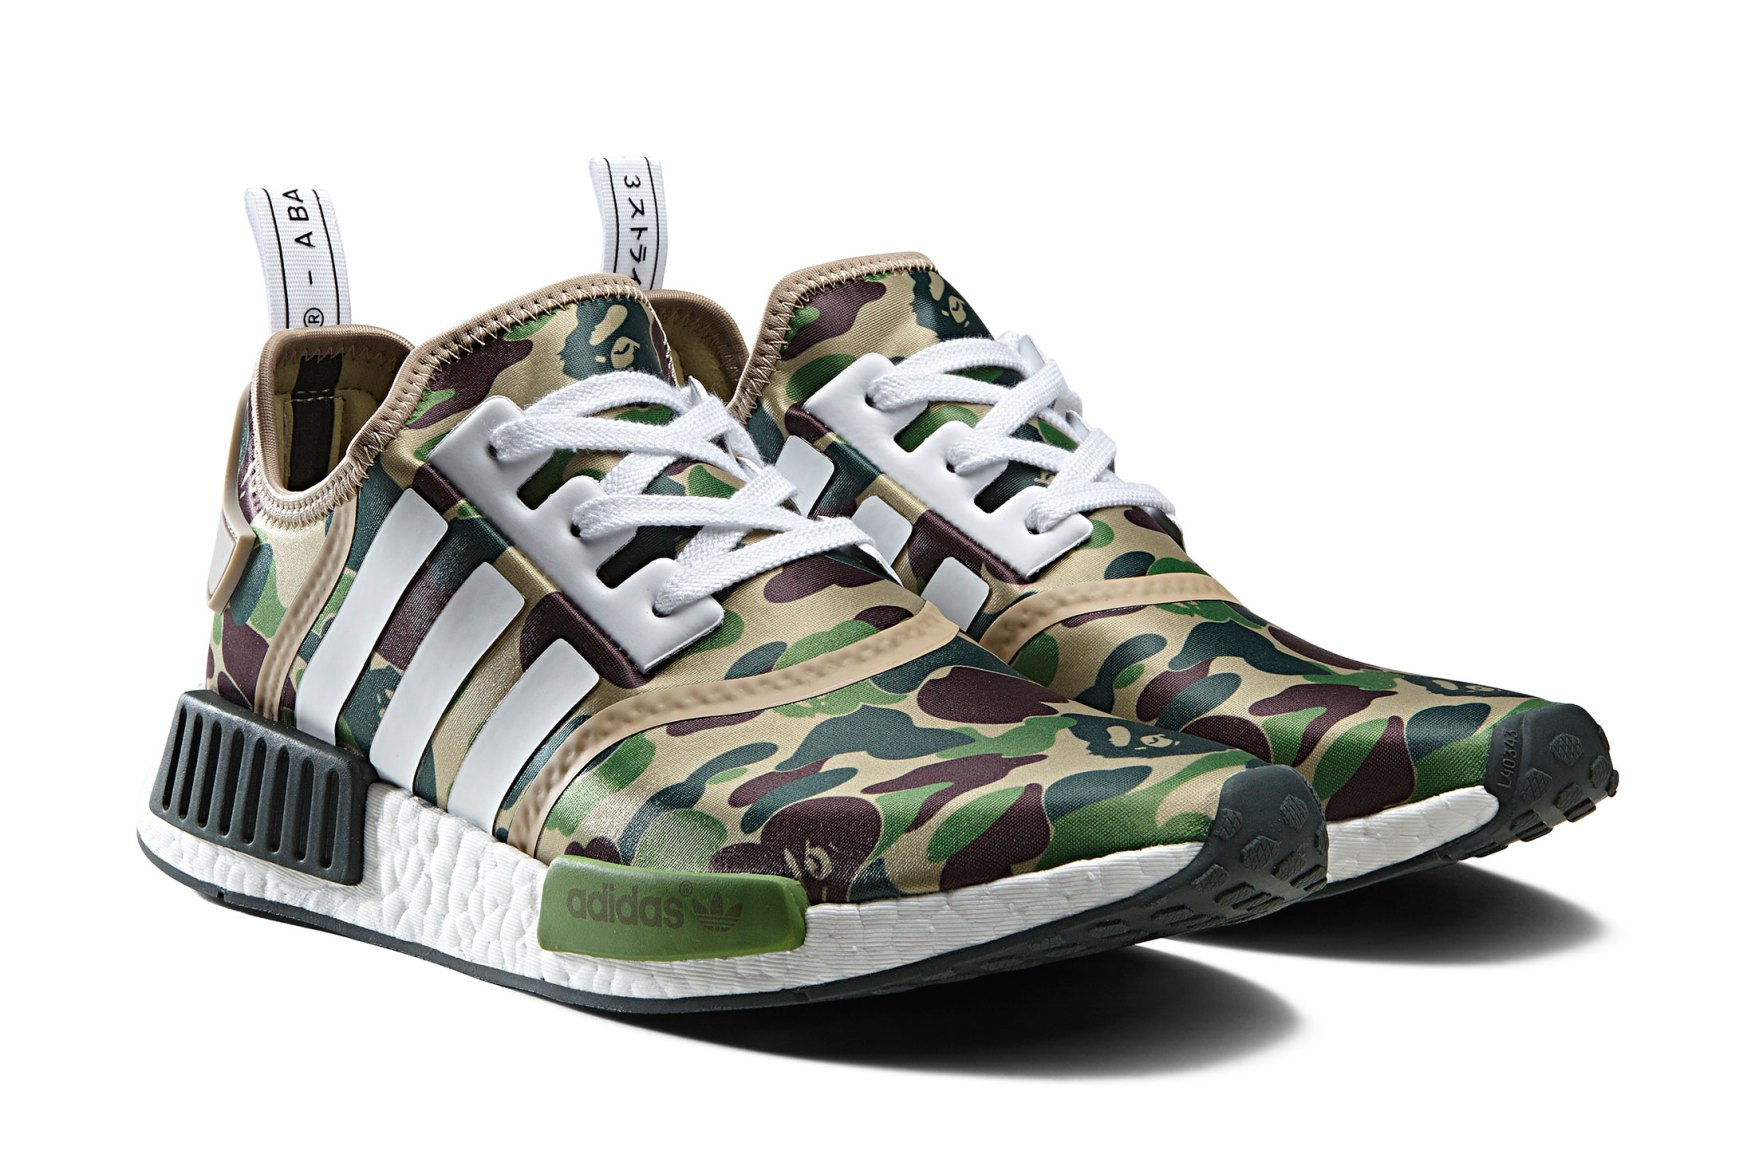 Official Store List for BAPE x Adidas Originals Release